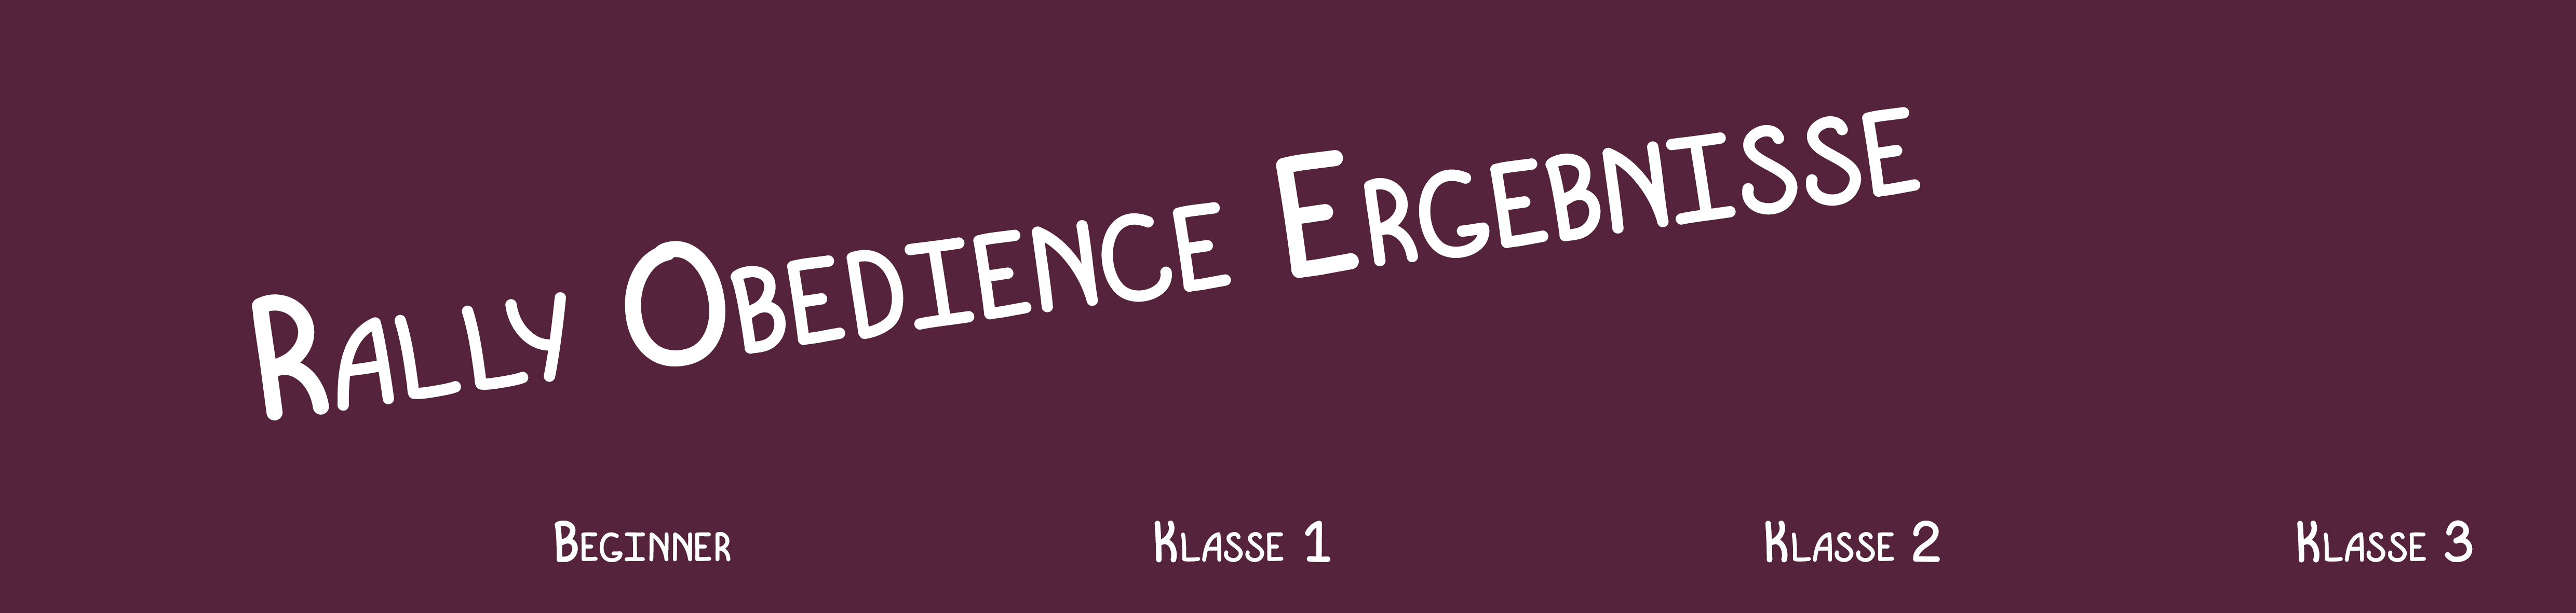 Rally Obedience-Ergebnisse